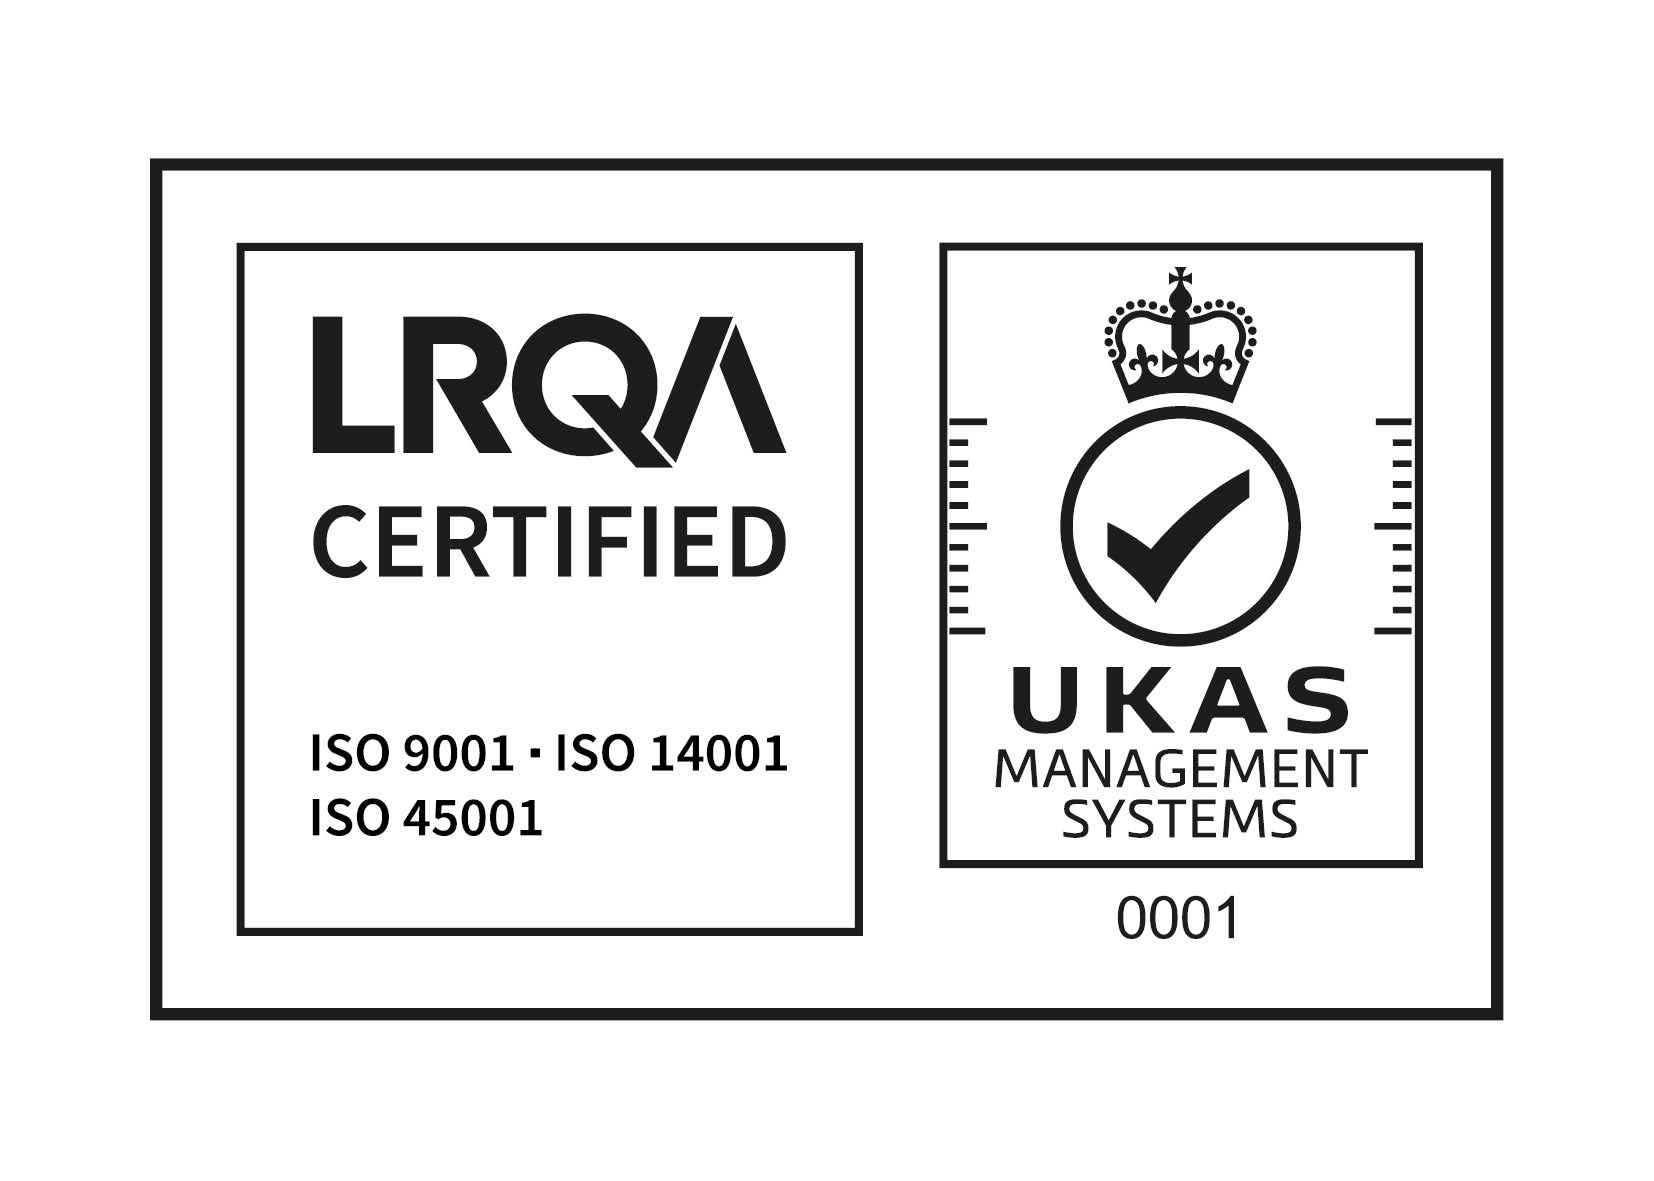 ukas-and-iso-9001-iso-14001-iso-45001-rgb